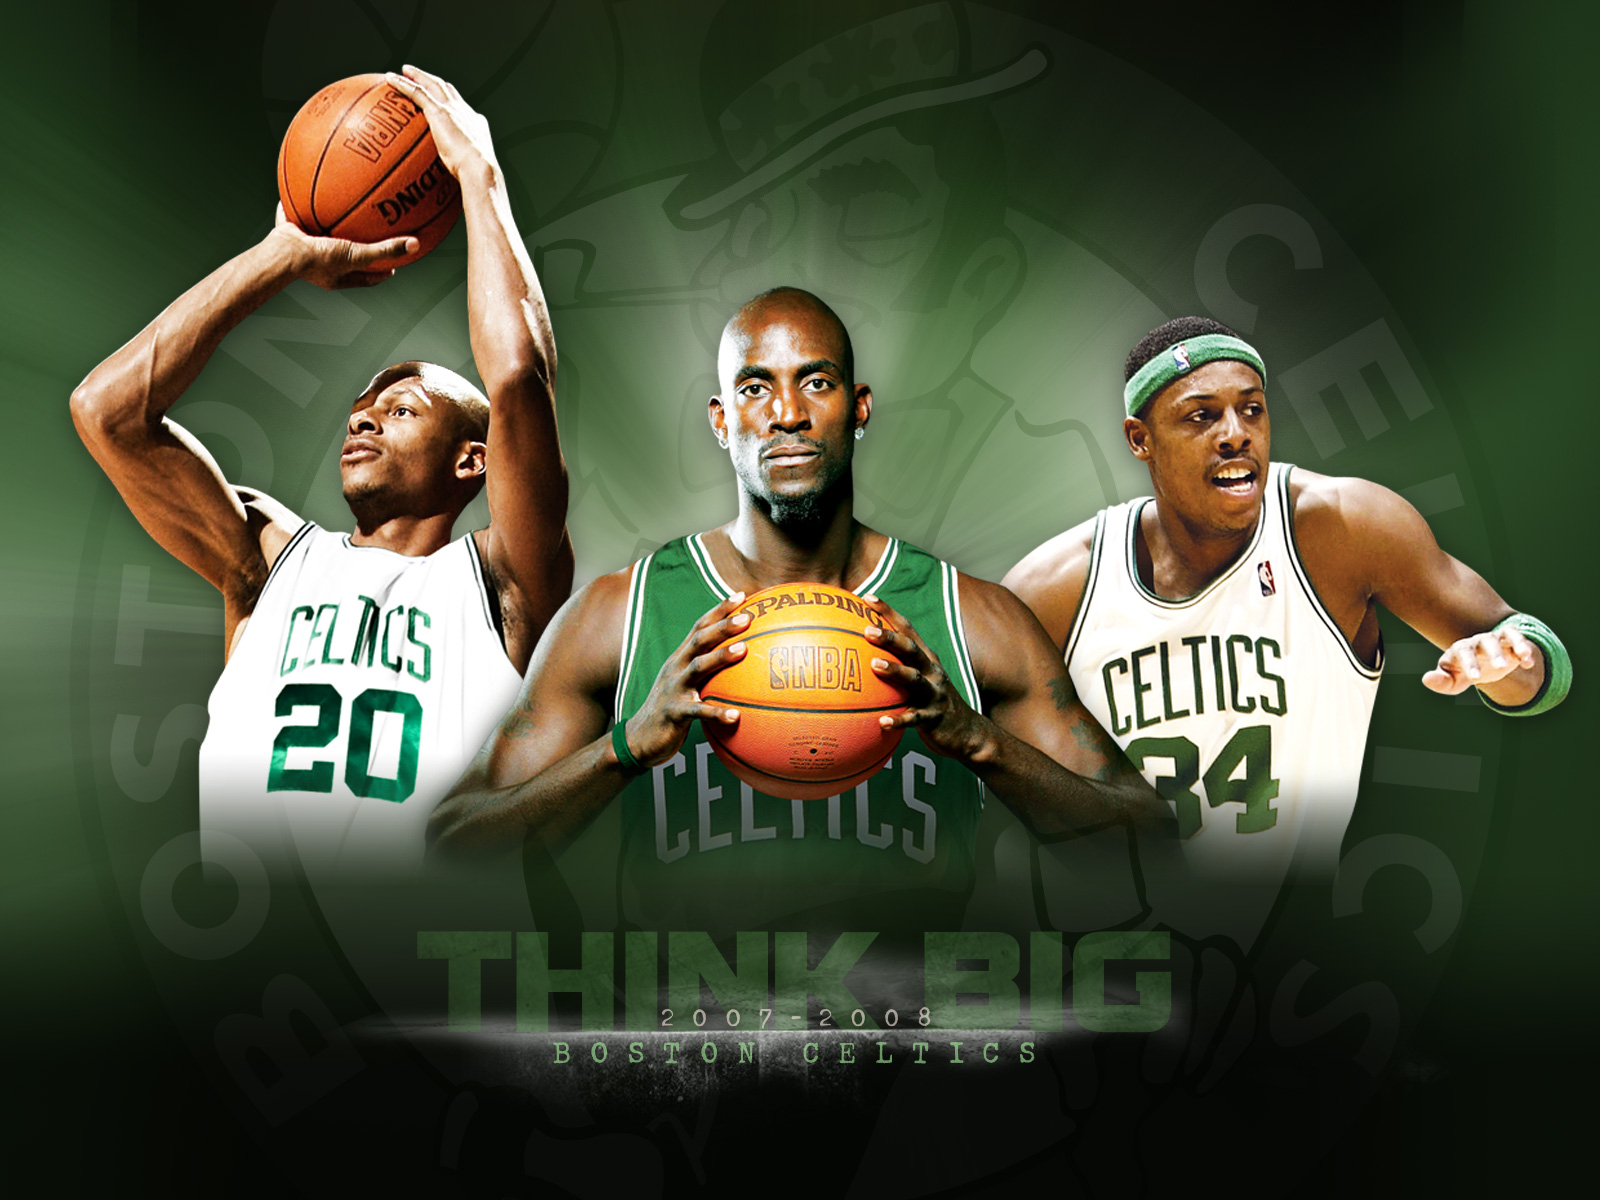 New Kevin Garnett Wife Celtics Dunk Wallpaper 1600x1200